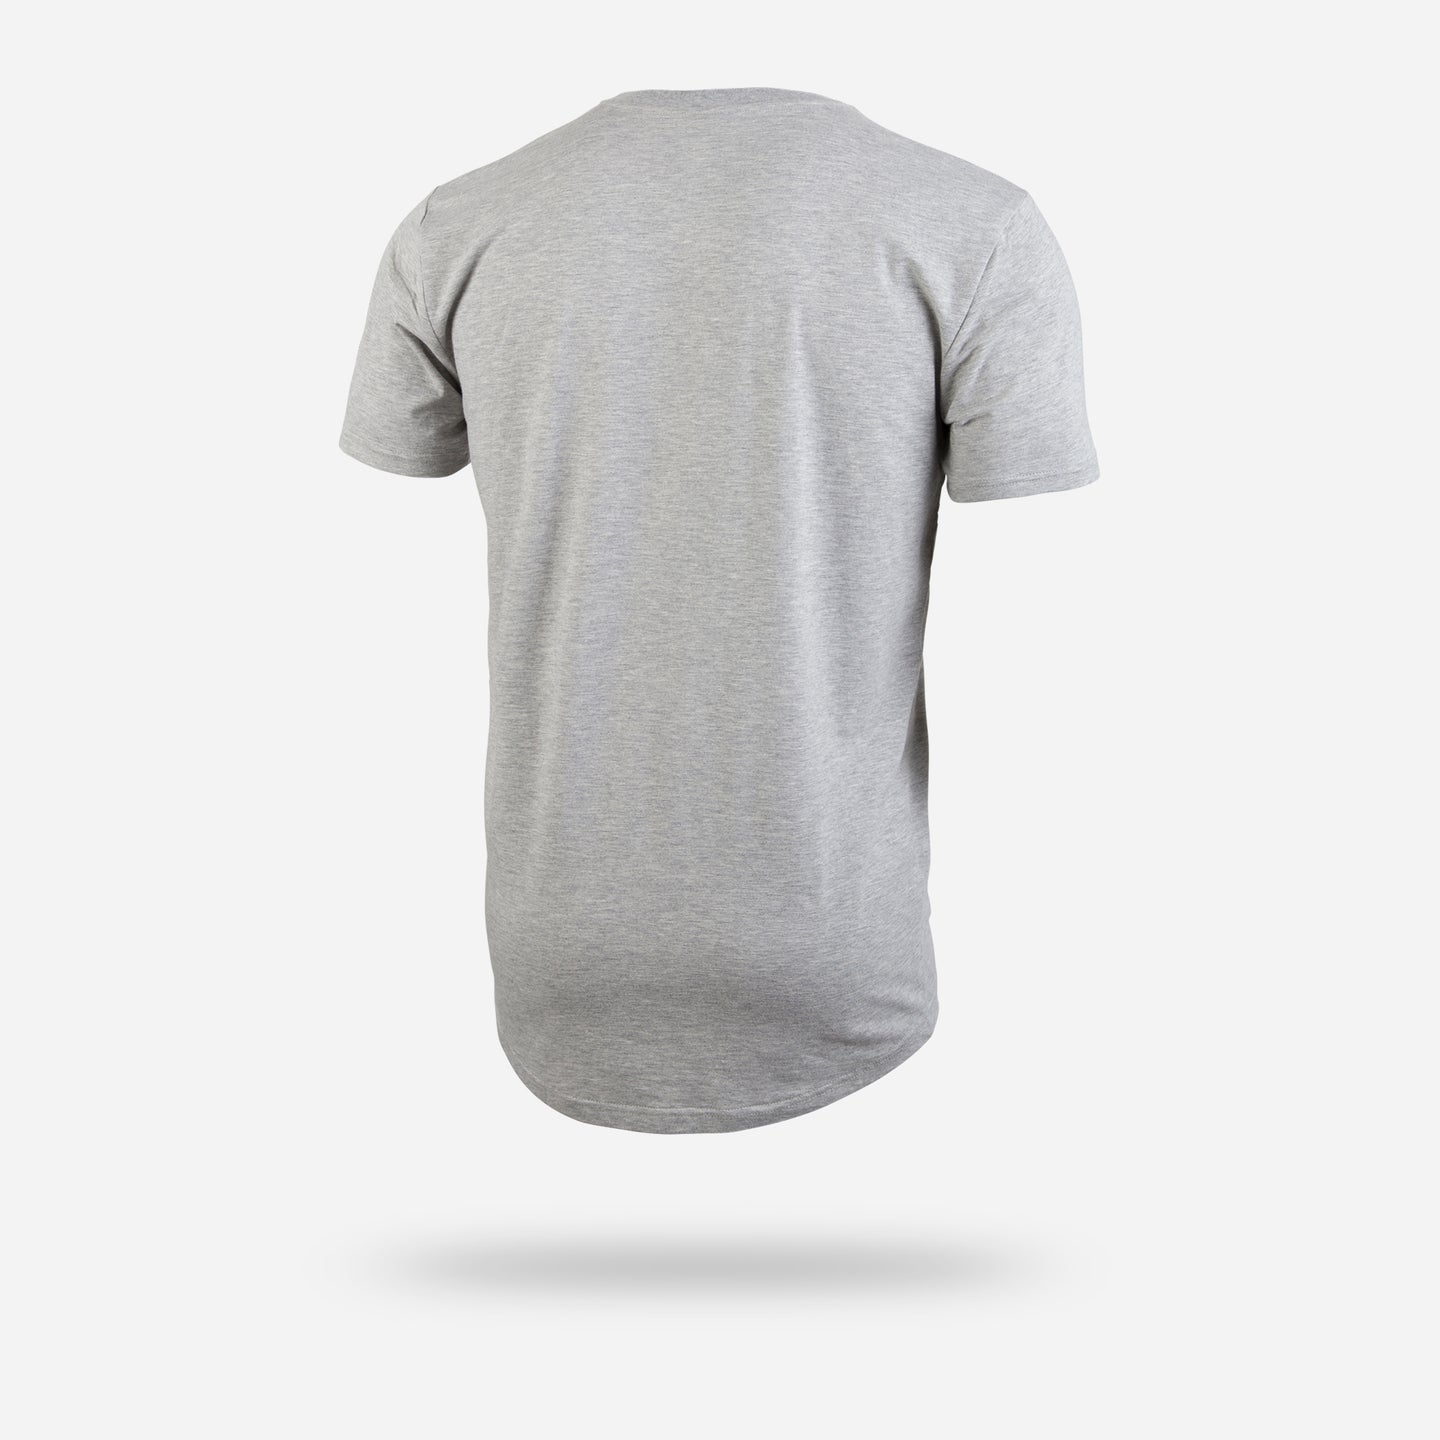 SELECT SHORT SLEEVE TEE: HEATHER/GREY